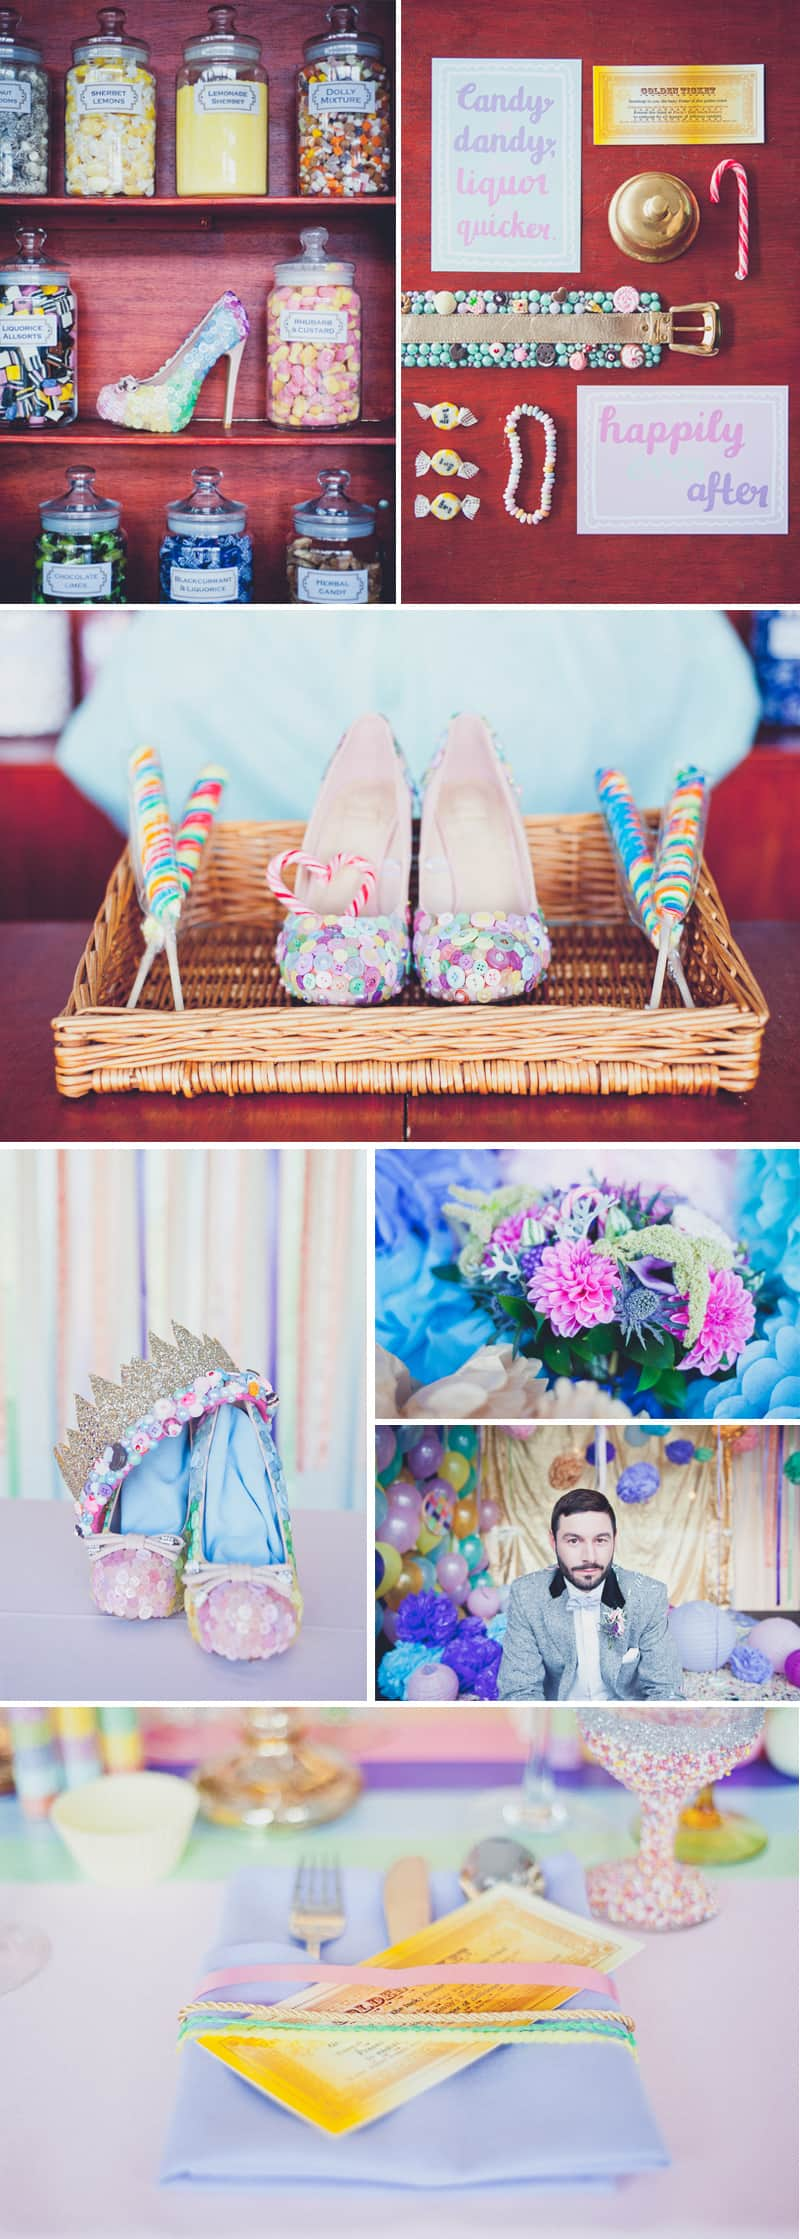 Willy Wonka Weird Wonderful Wedding World 1